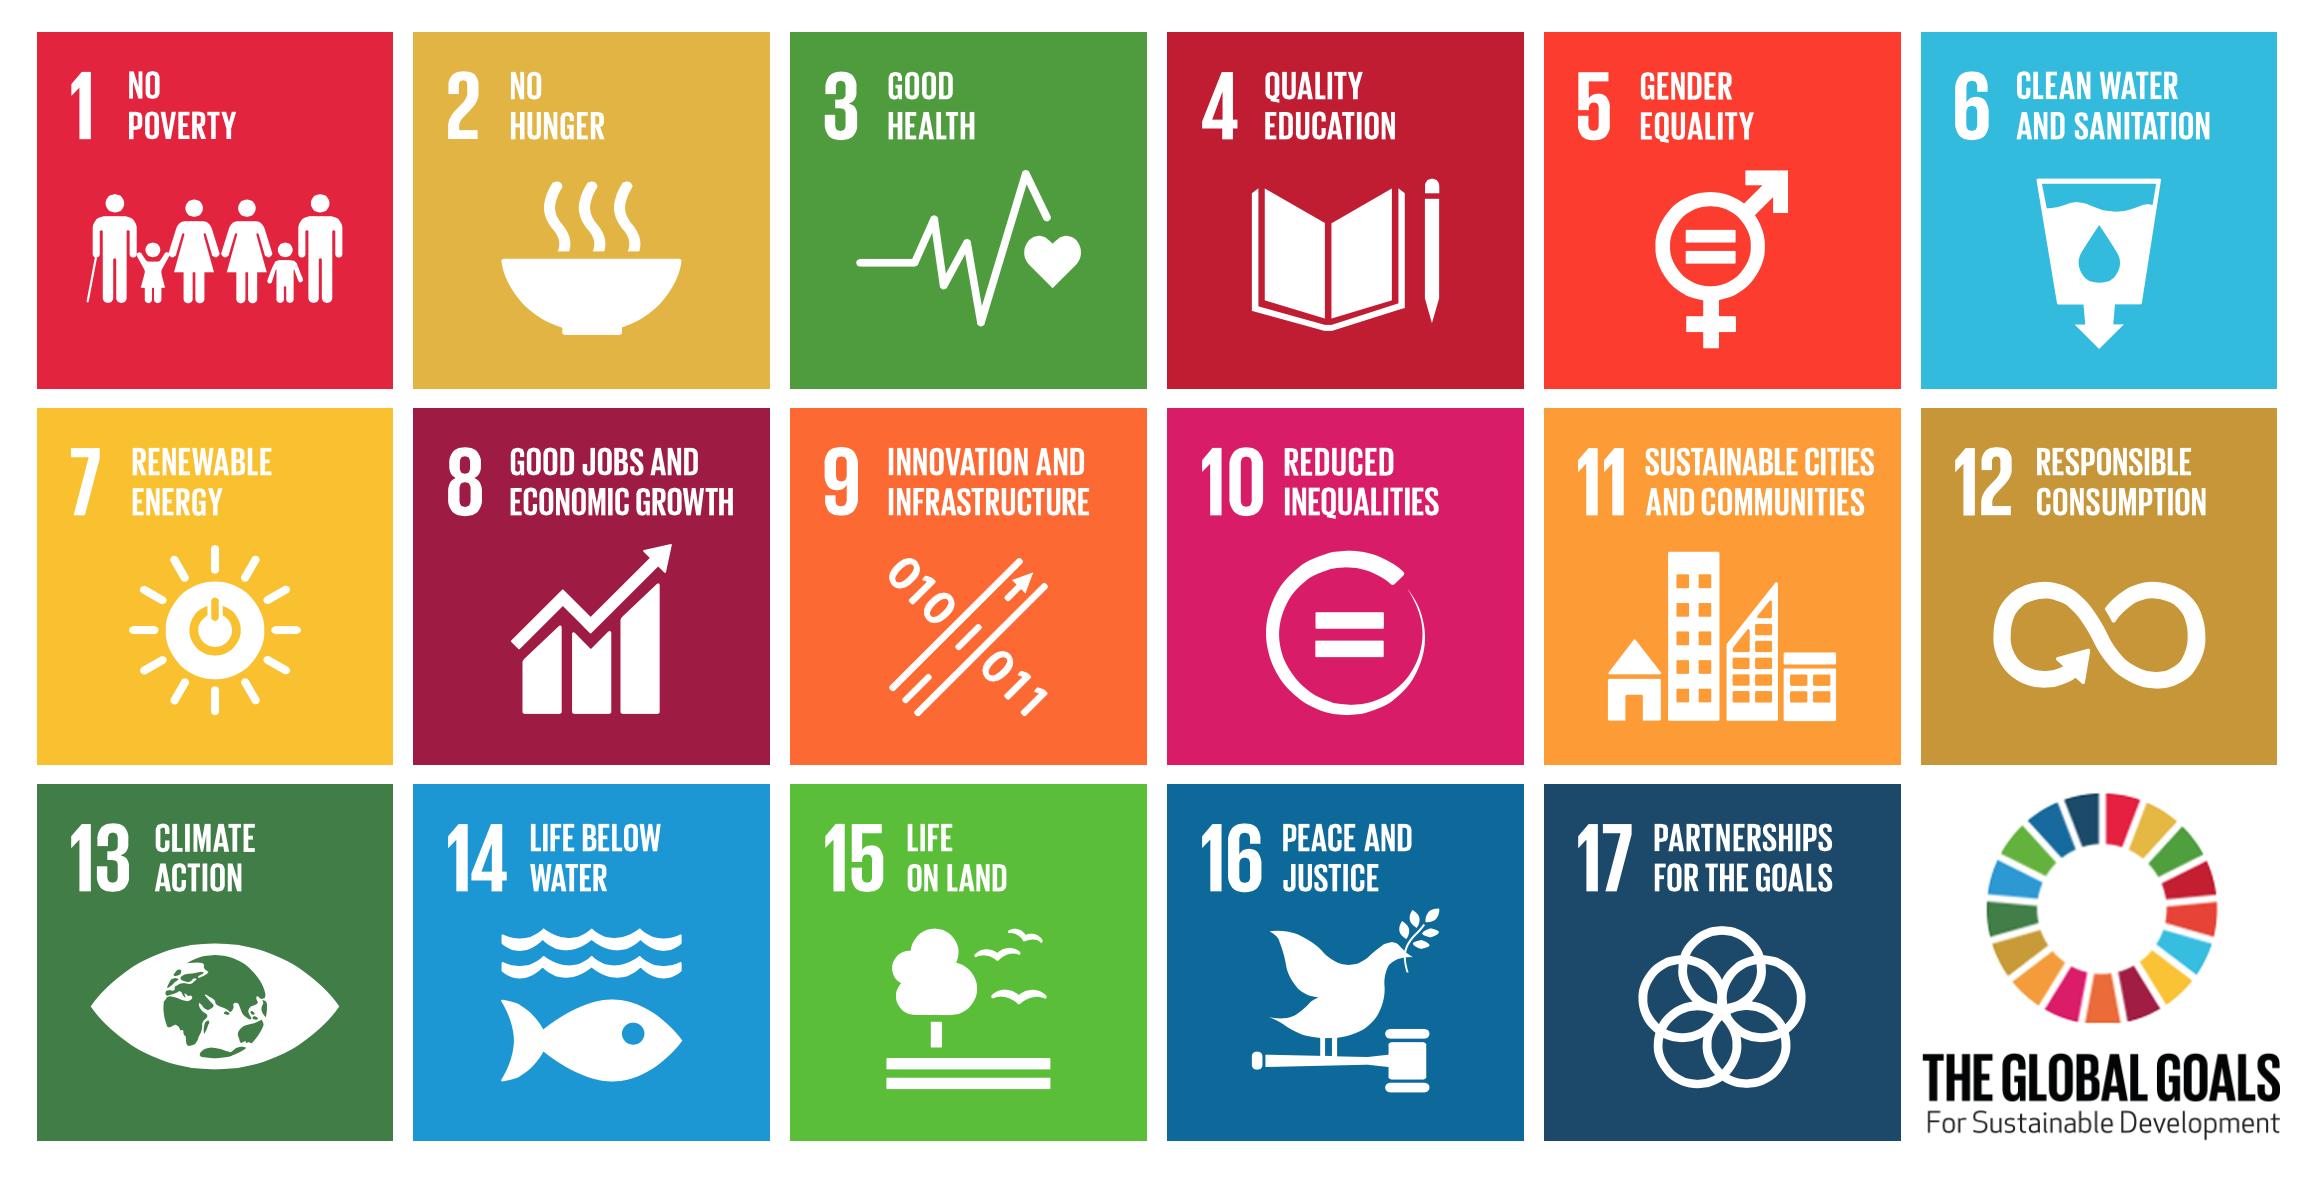 Co ops commit to un sustainable development goals co operative news malvernweather Choice Image